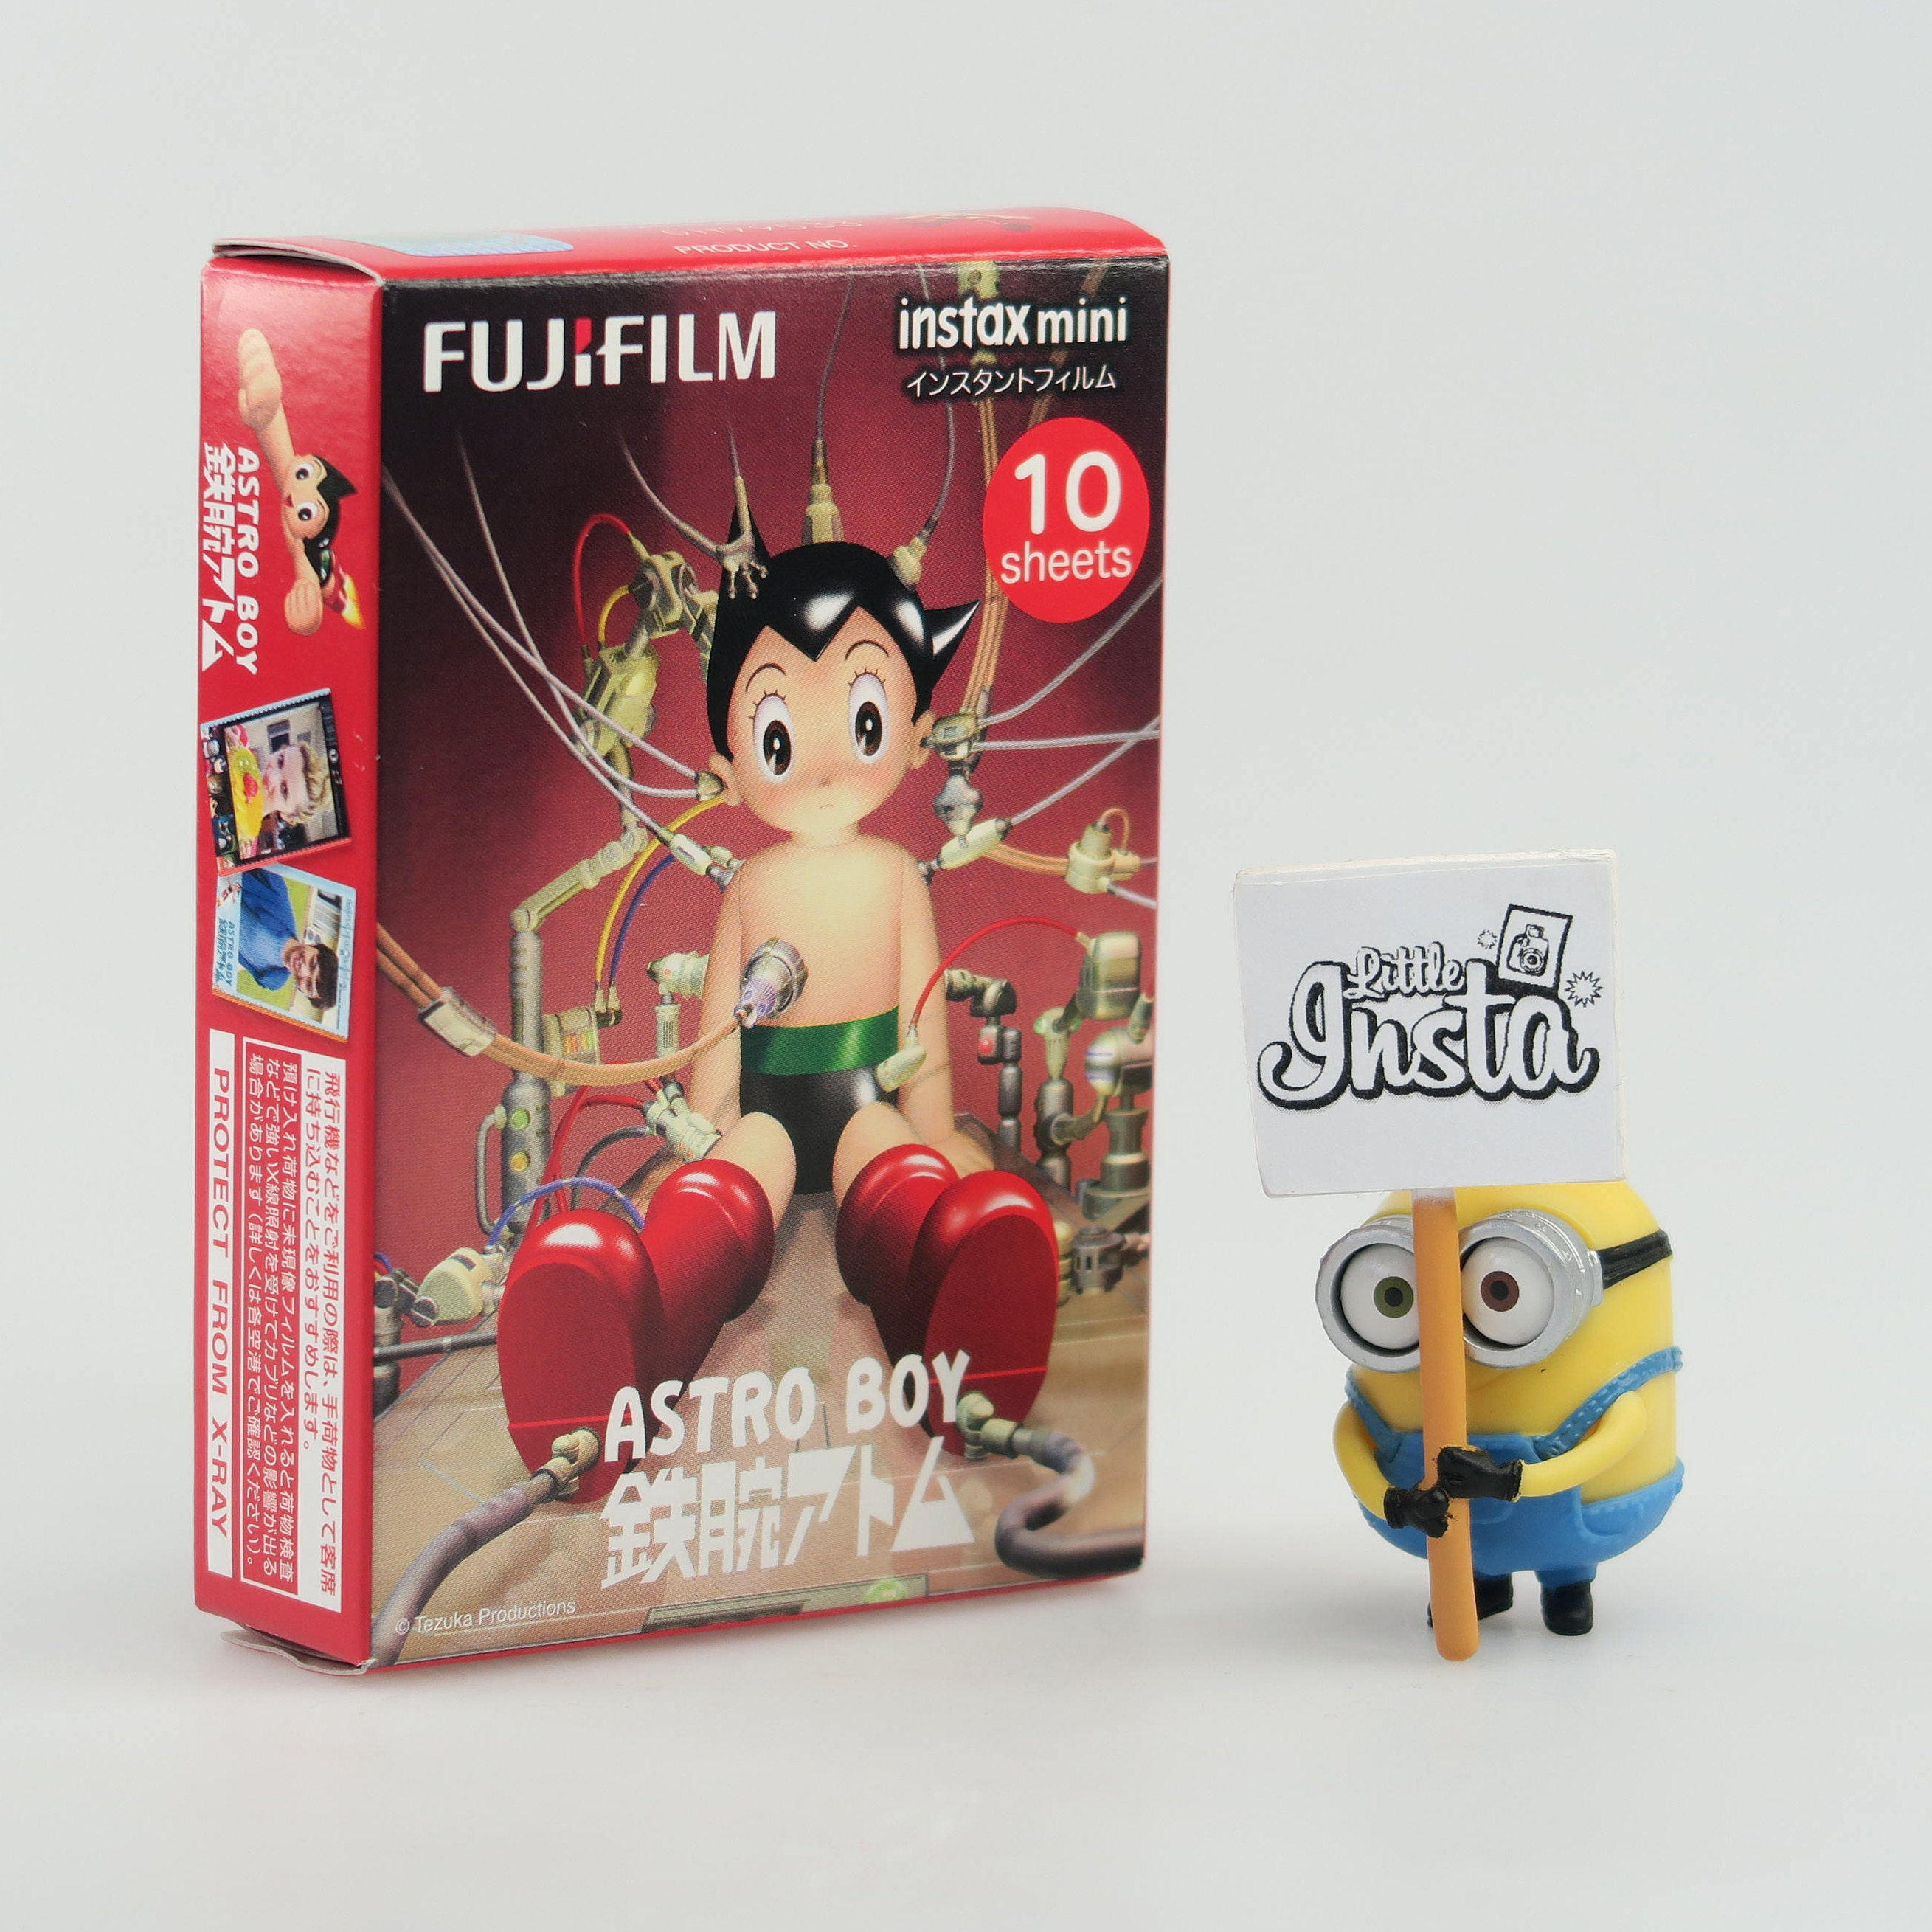 Fujifilm Instax Mini Film Astroboy For 7 8 Etsy Astro Boy The Movie Action Figure Original 9 25 50 70 90 Sp 1 2 Polaroid Pic 300